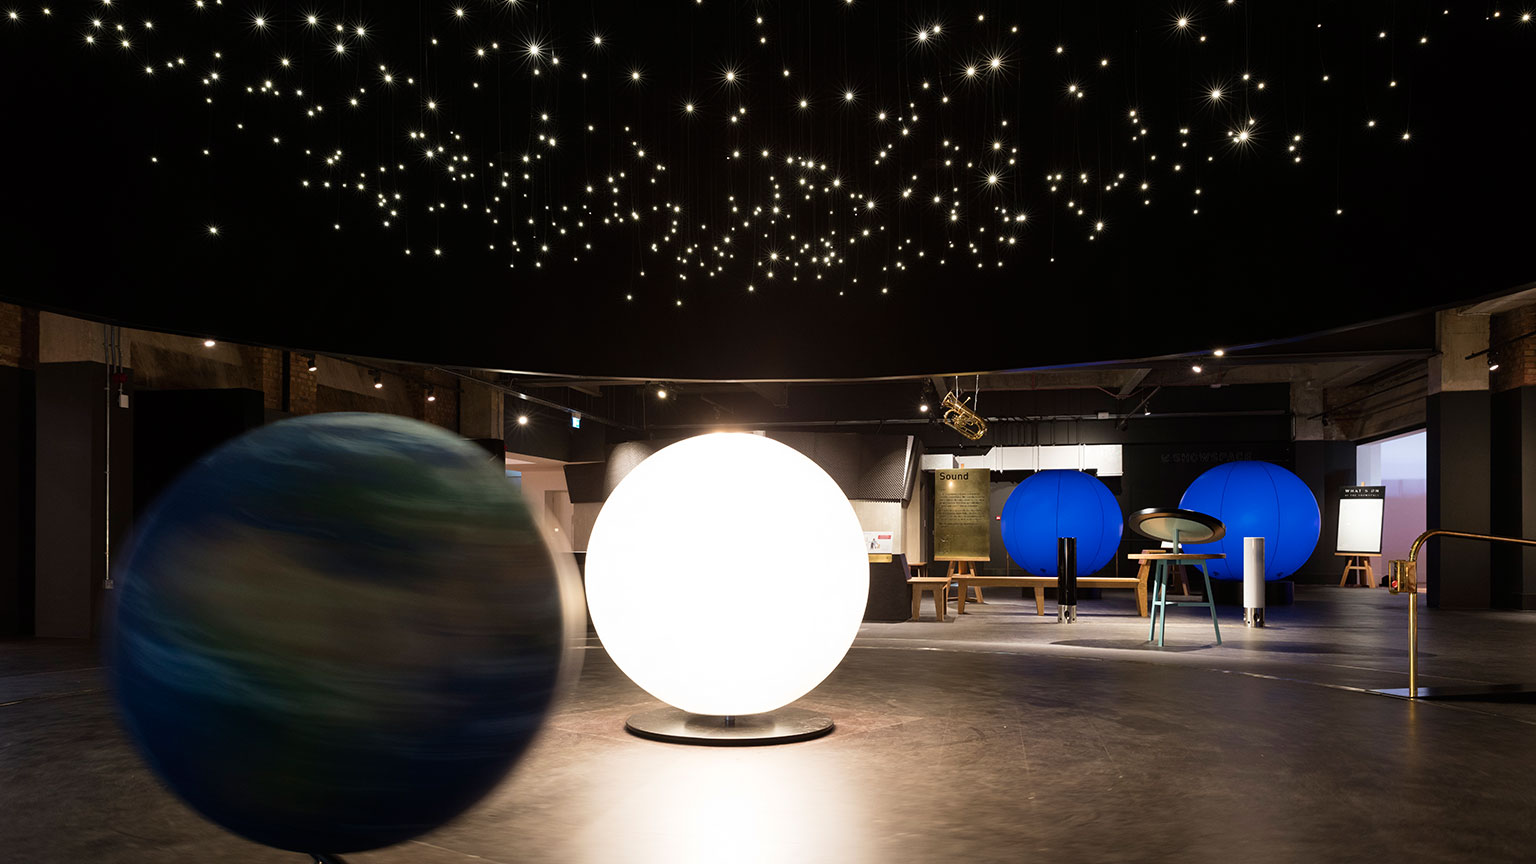 The orrery in Wonderlab: The Statoil Gallery